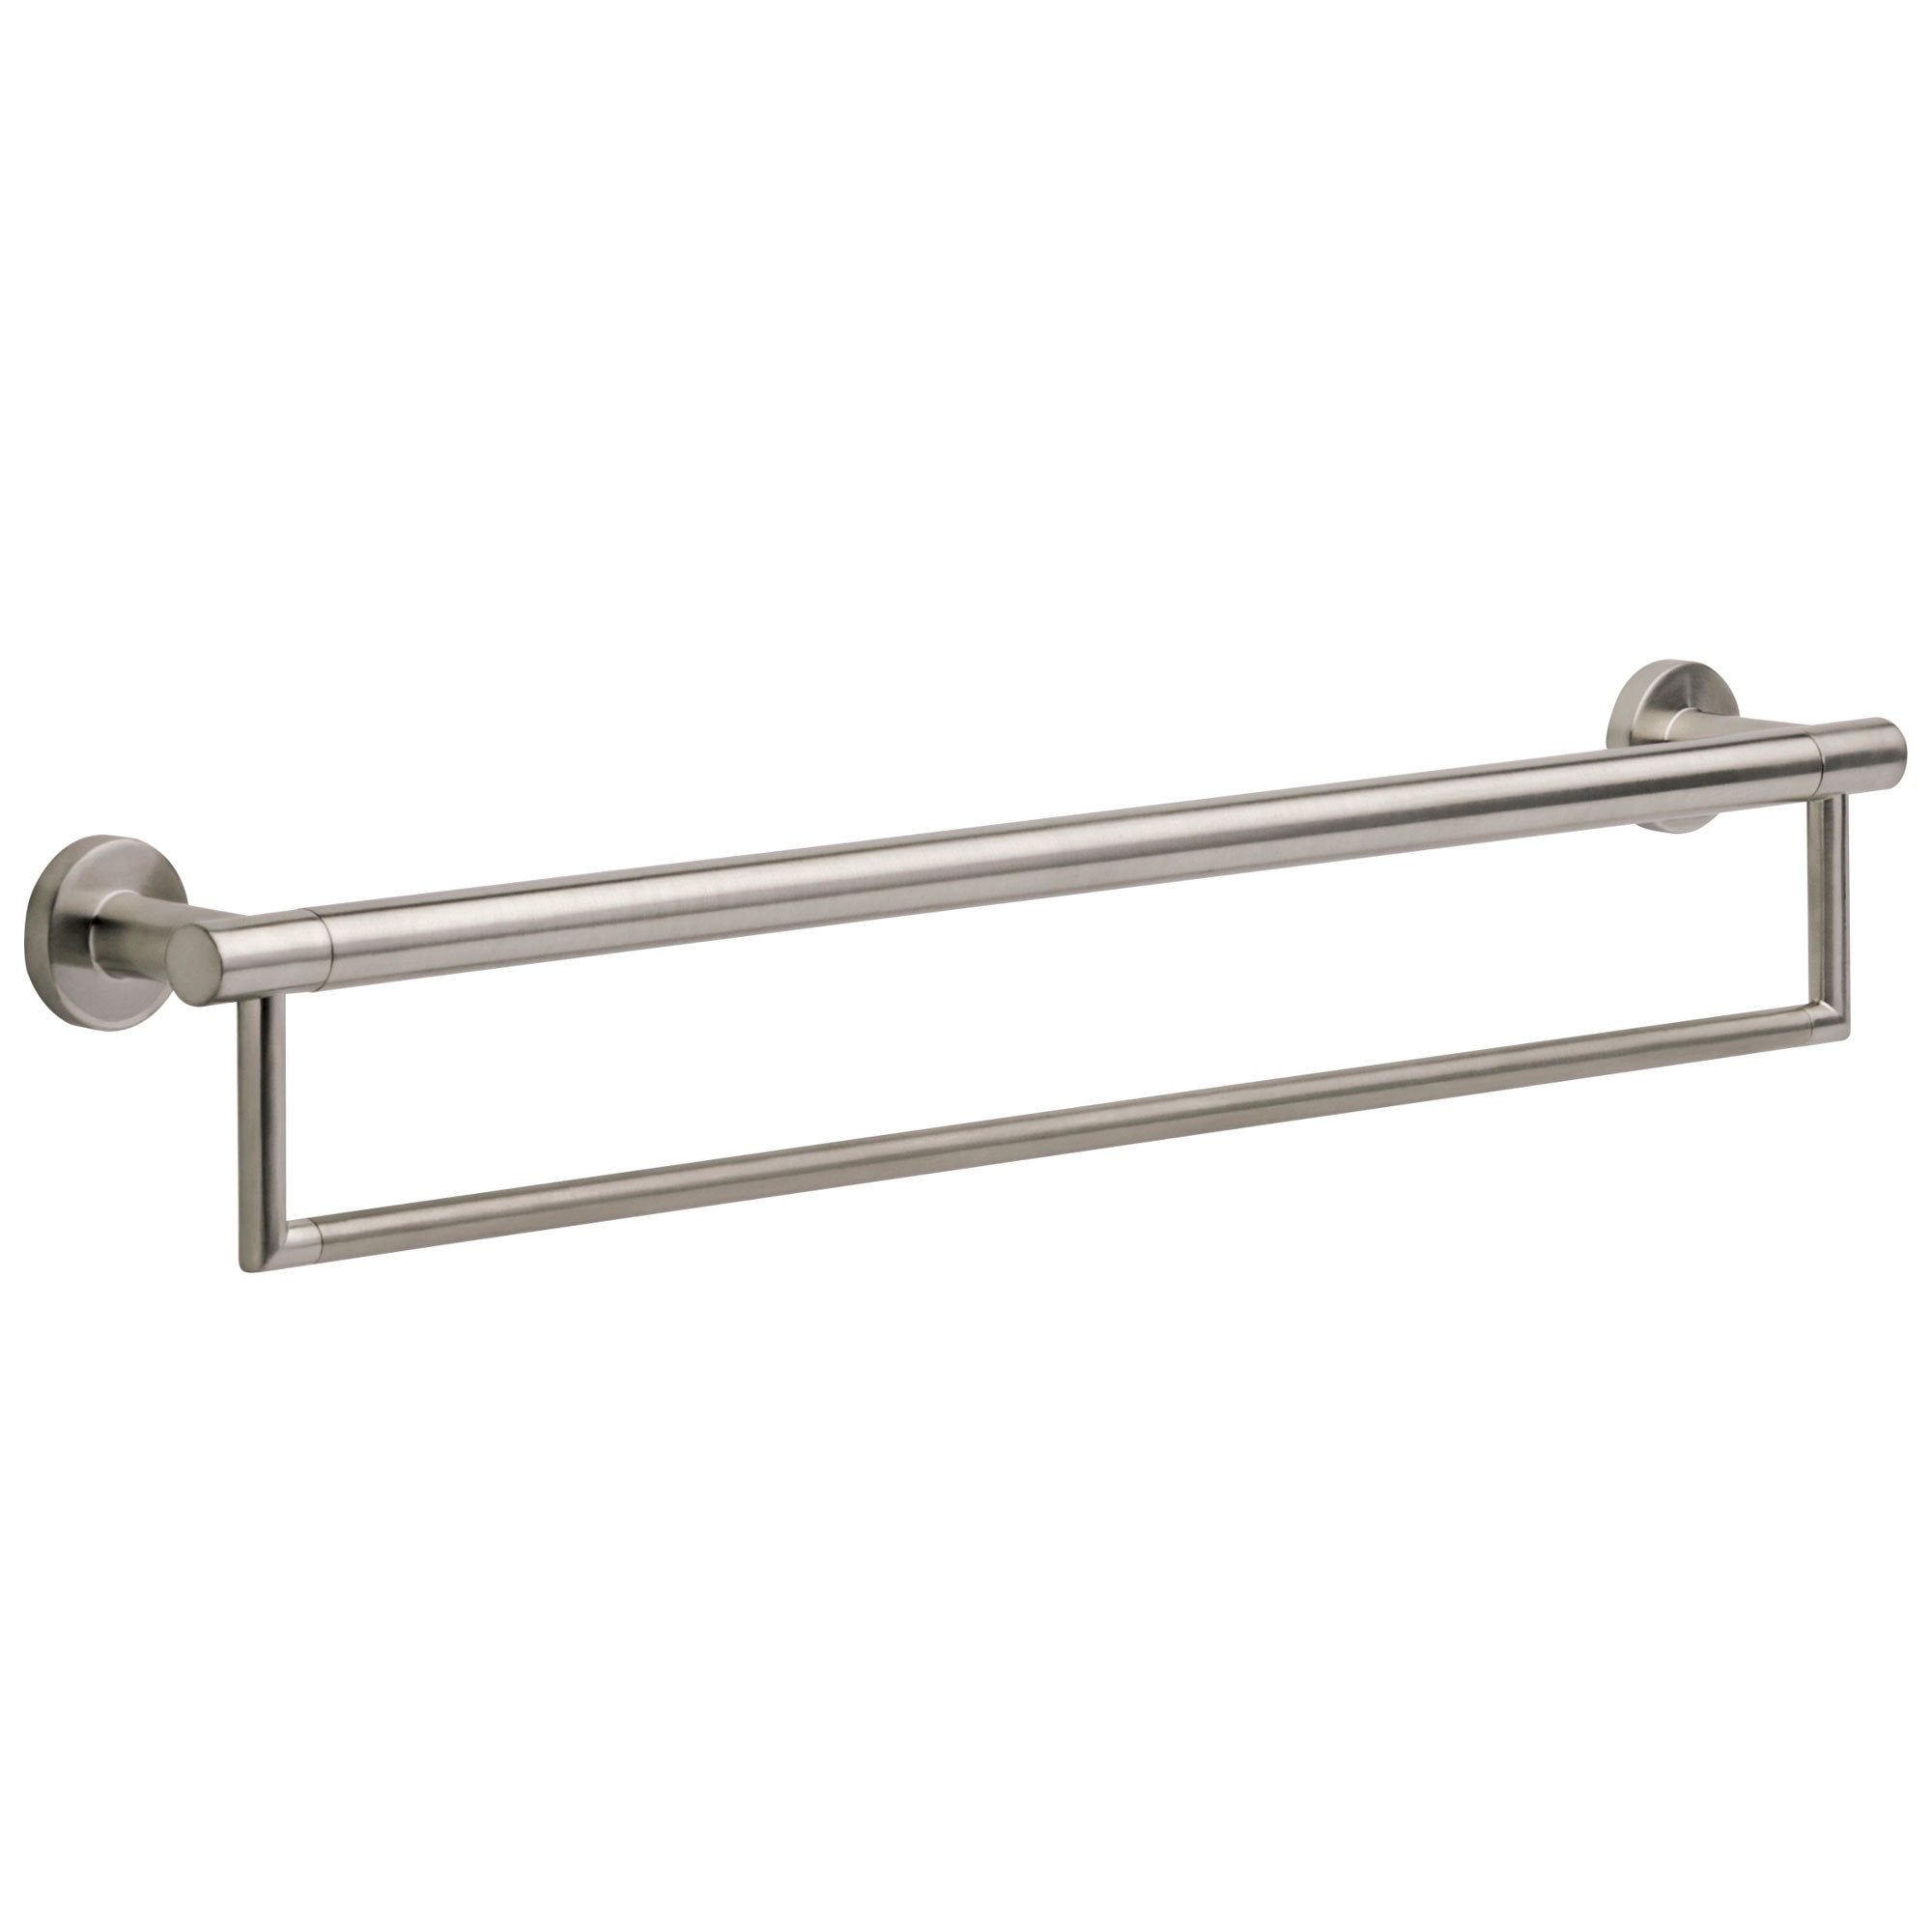 "Delta Bath Safety Collection Stainless Steel Finish Contemporary 24"" Towel Bar with Assist Grab Bar 660992"